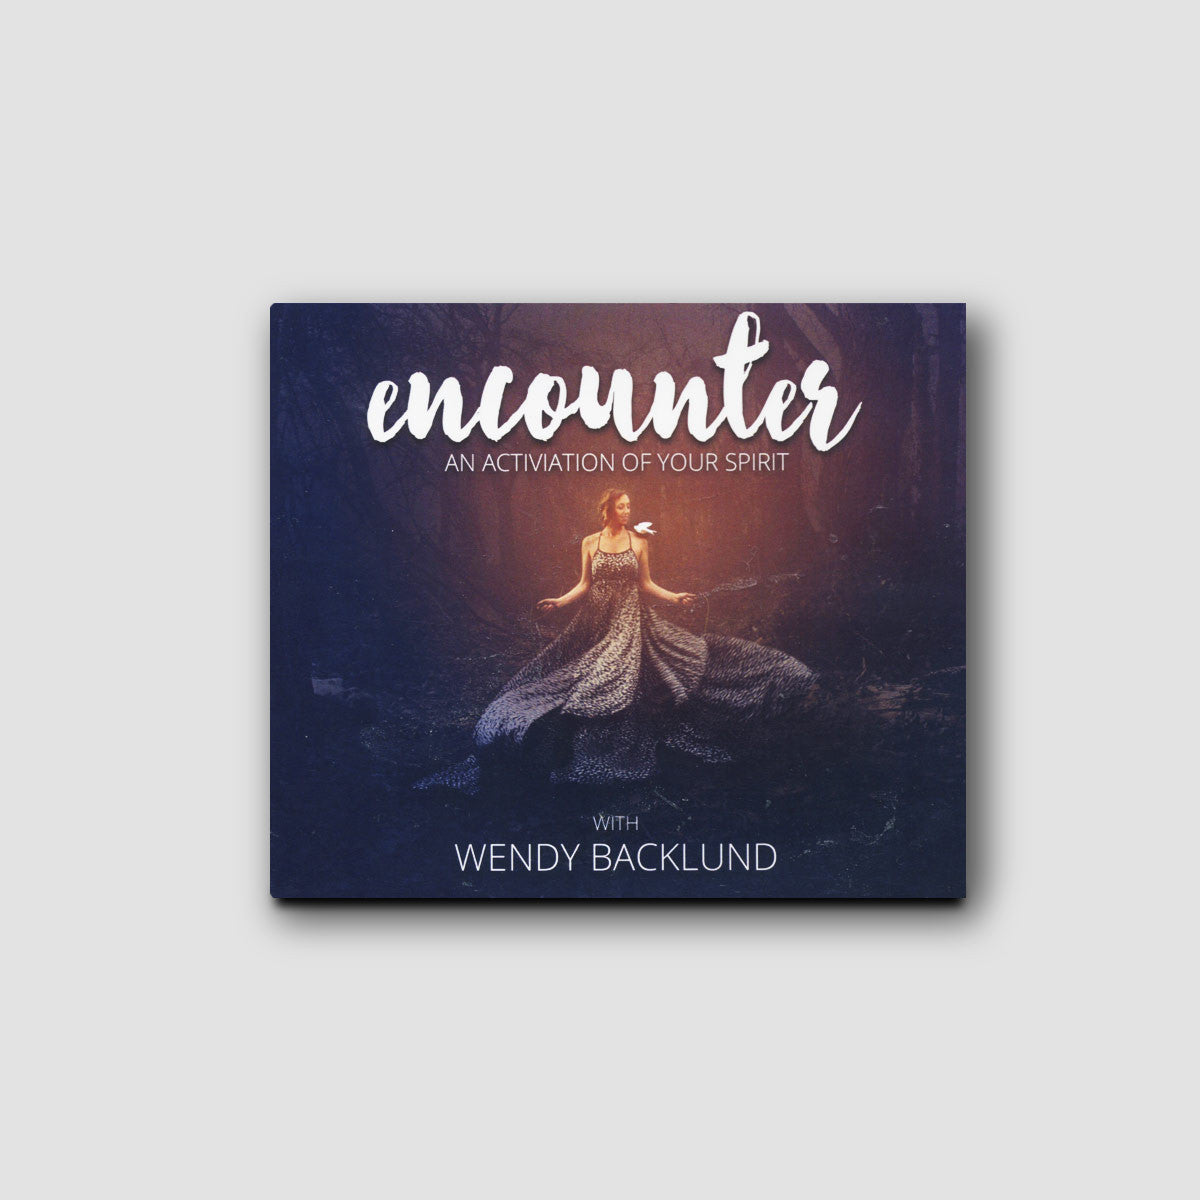 Encounter: An Activation of Your Spirit